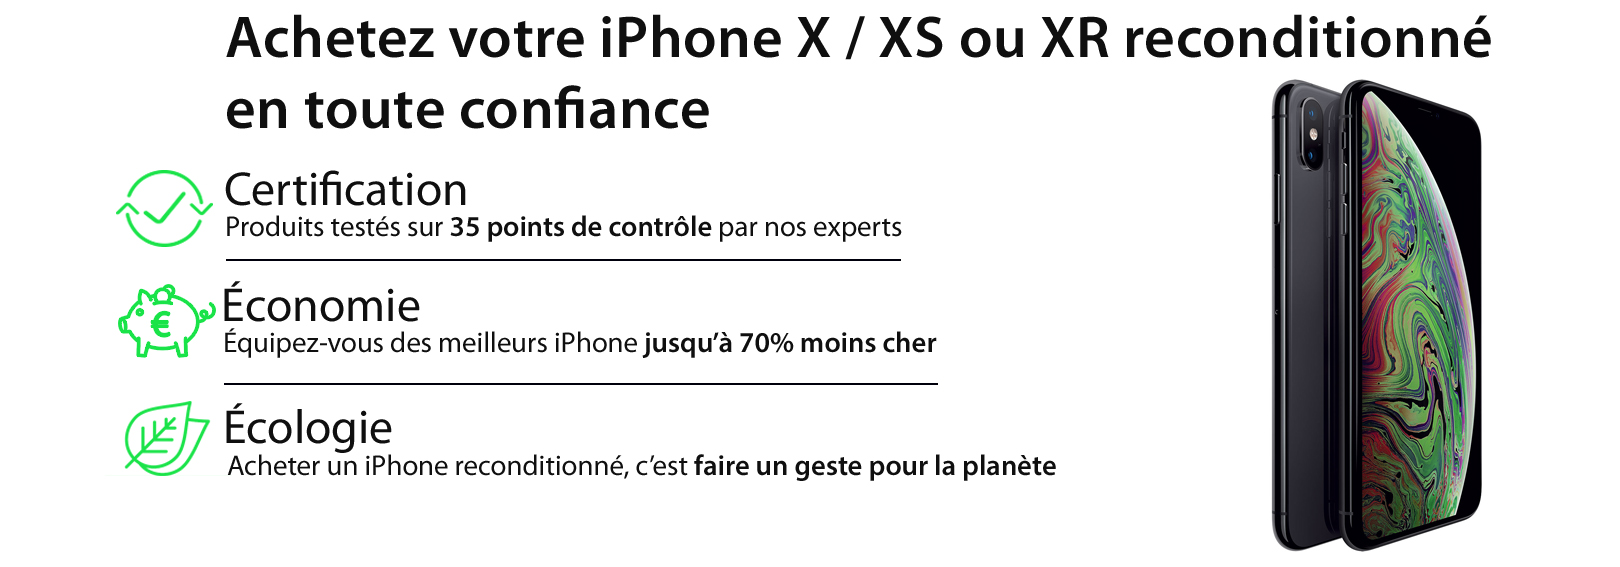 iphone X reconditionné & iphone XS reconditionné